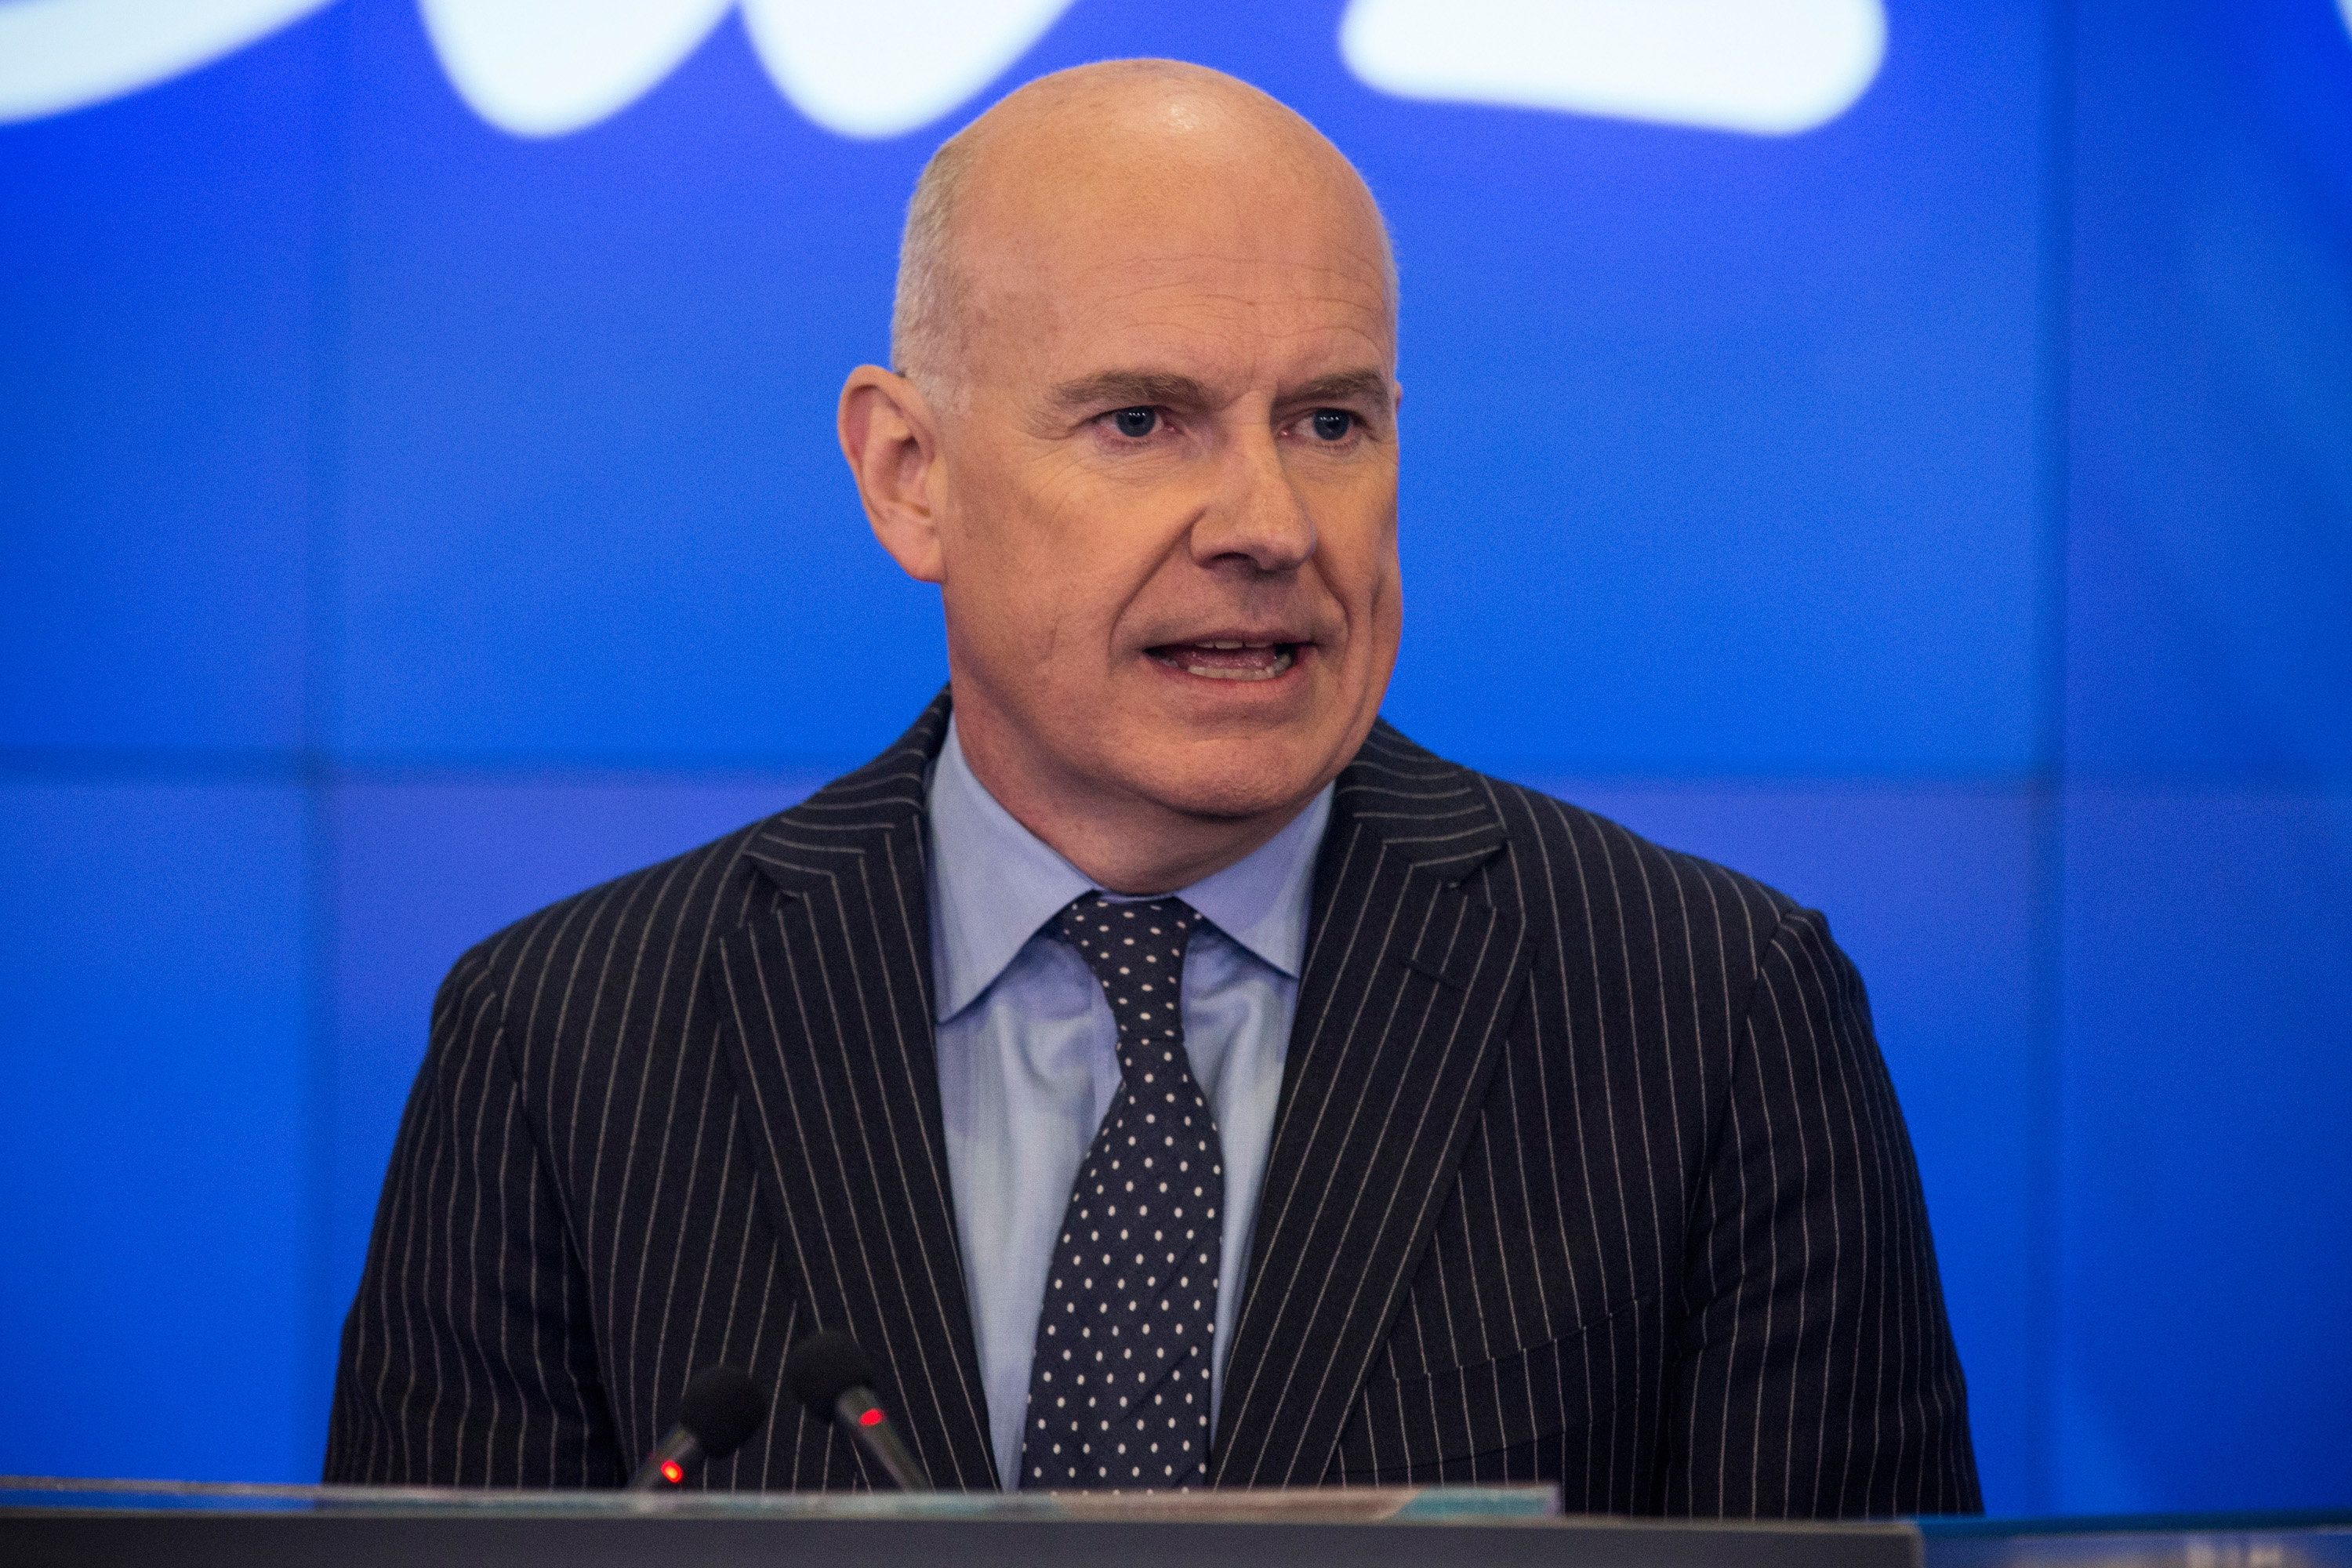 NEW YORK, NY - JULY 08:  Gerard Baker, Editor in Chief of The Wall Street Journal, speaks at the opening bell of the NASDAQ stock exchange, on July 8, 2014 in New York City. The Wall Street Journal is celebrating its 125th anniversary today.  (Photo by Andrew Burton/Getty Images)